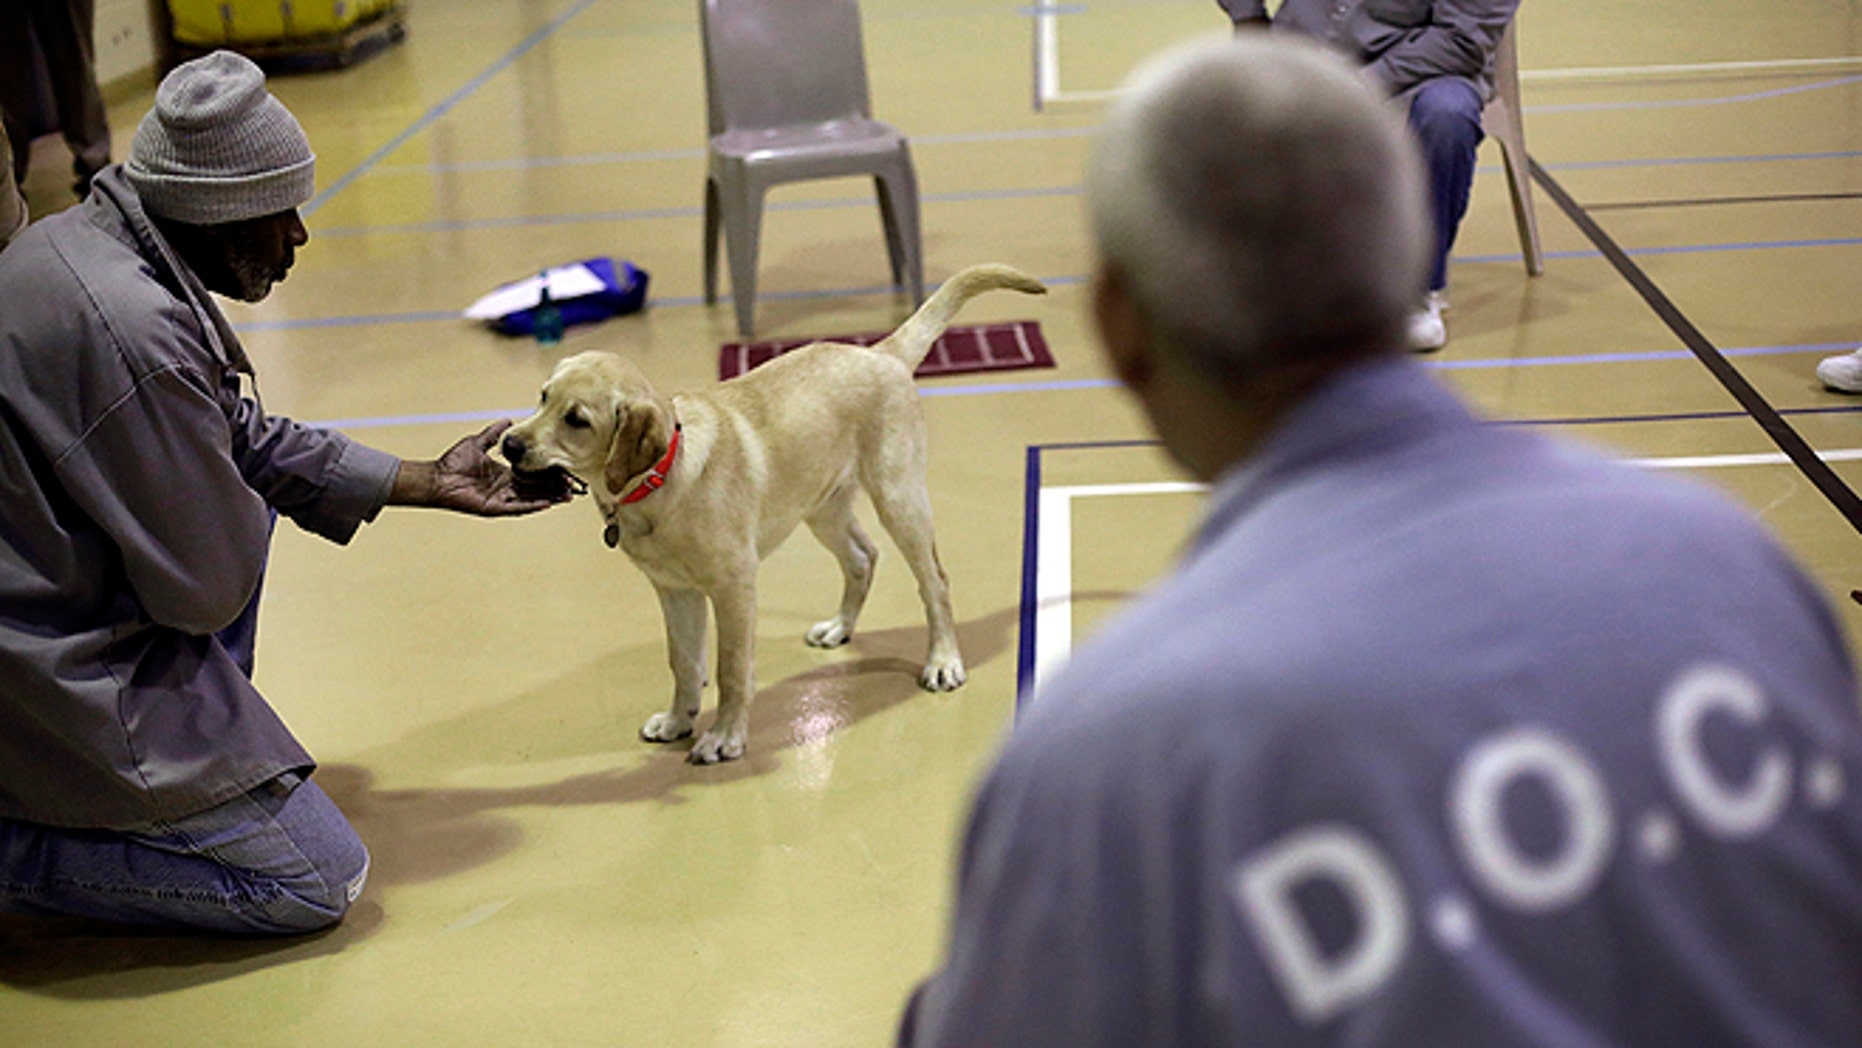 Dec. 18, 2012: Nero, a veteran assistance dog in training, takes a ball from inmate James Harrison during a training session at Western Correctional Institution in Cresaptown, Md. (AP)